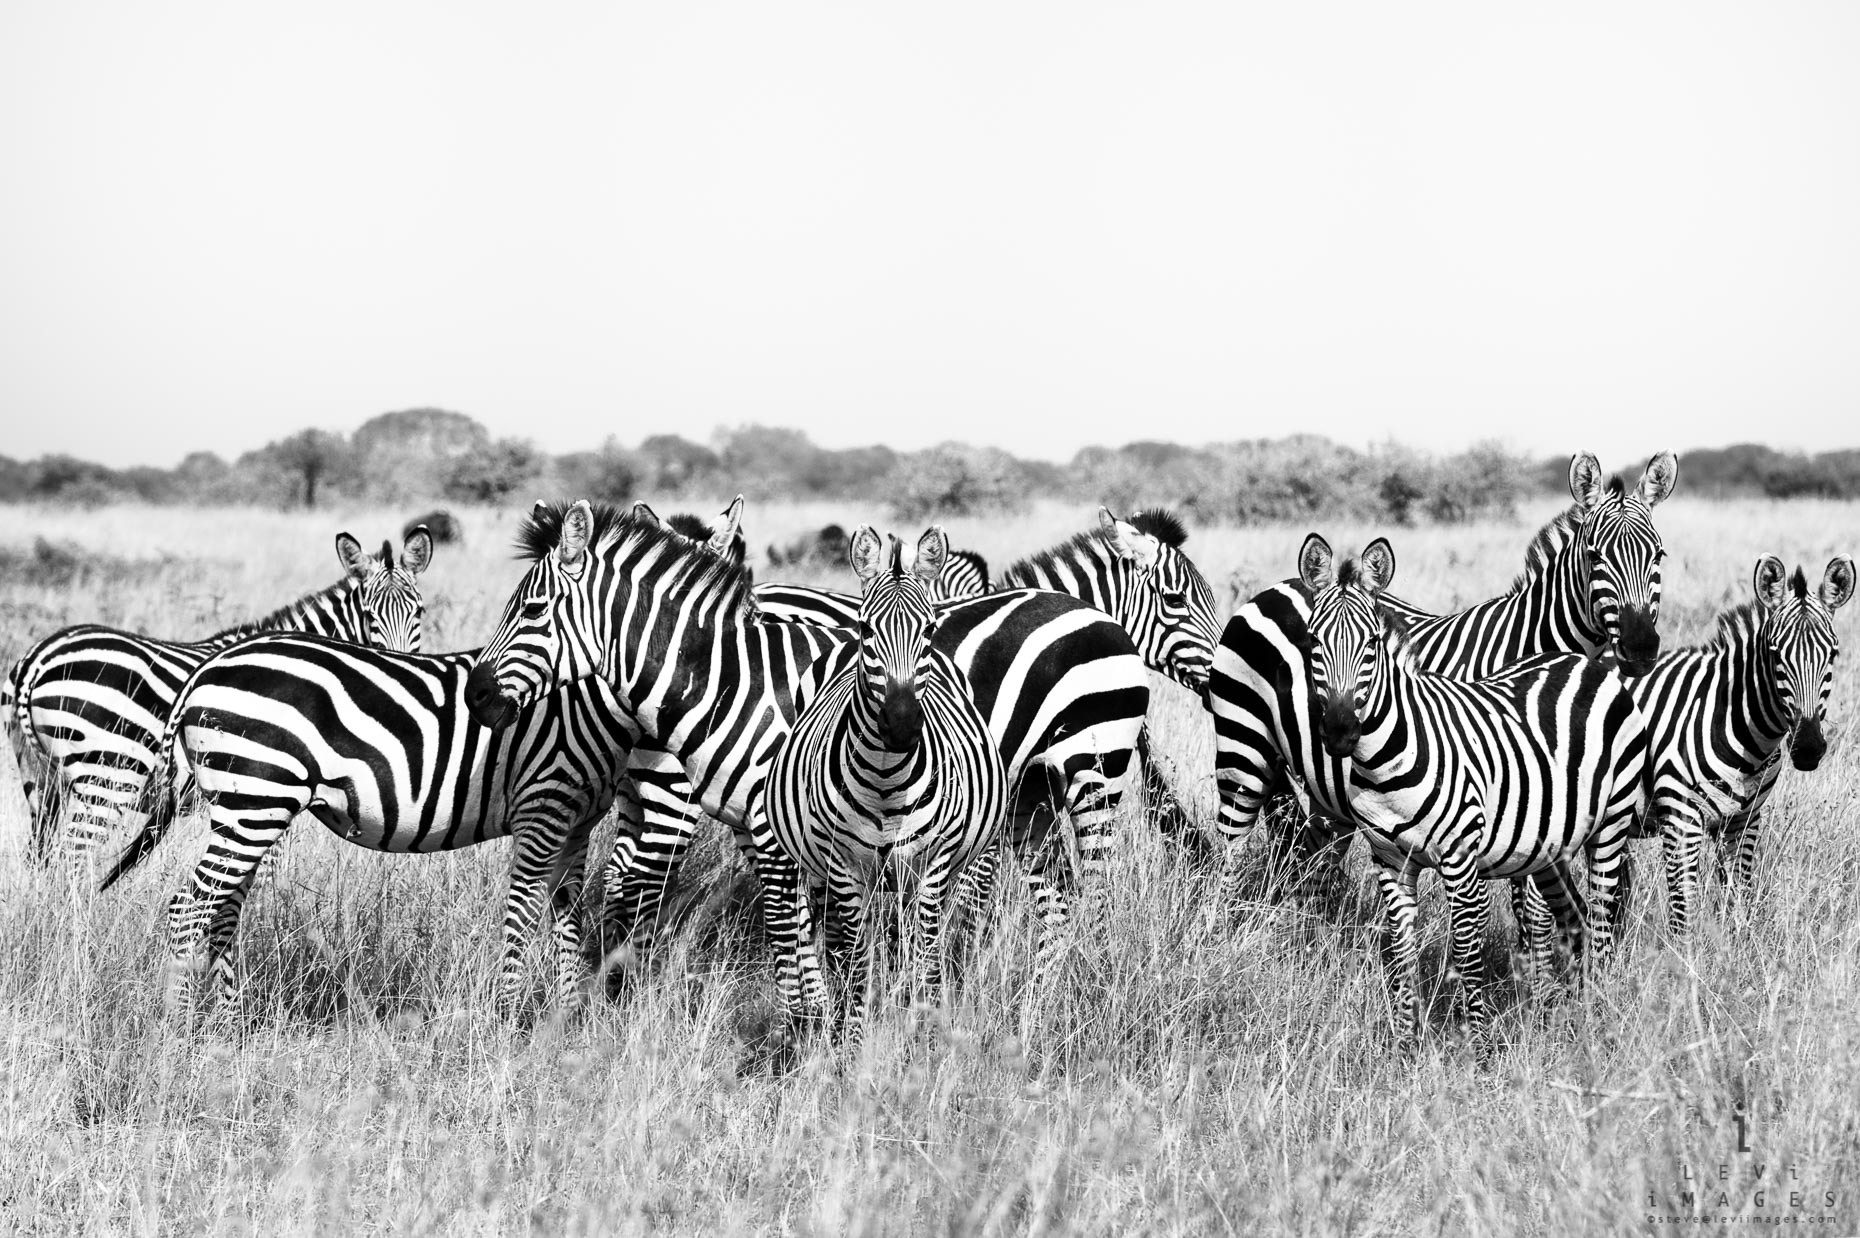 Plains zebra (Equus quagga) looking, black-and-white. Maasai Mara, Kenya